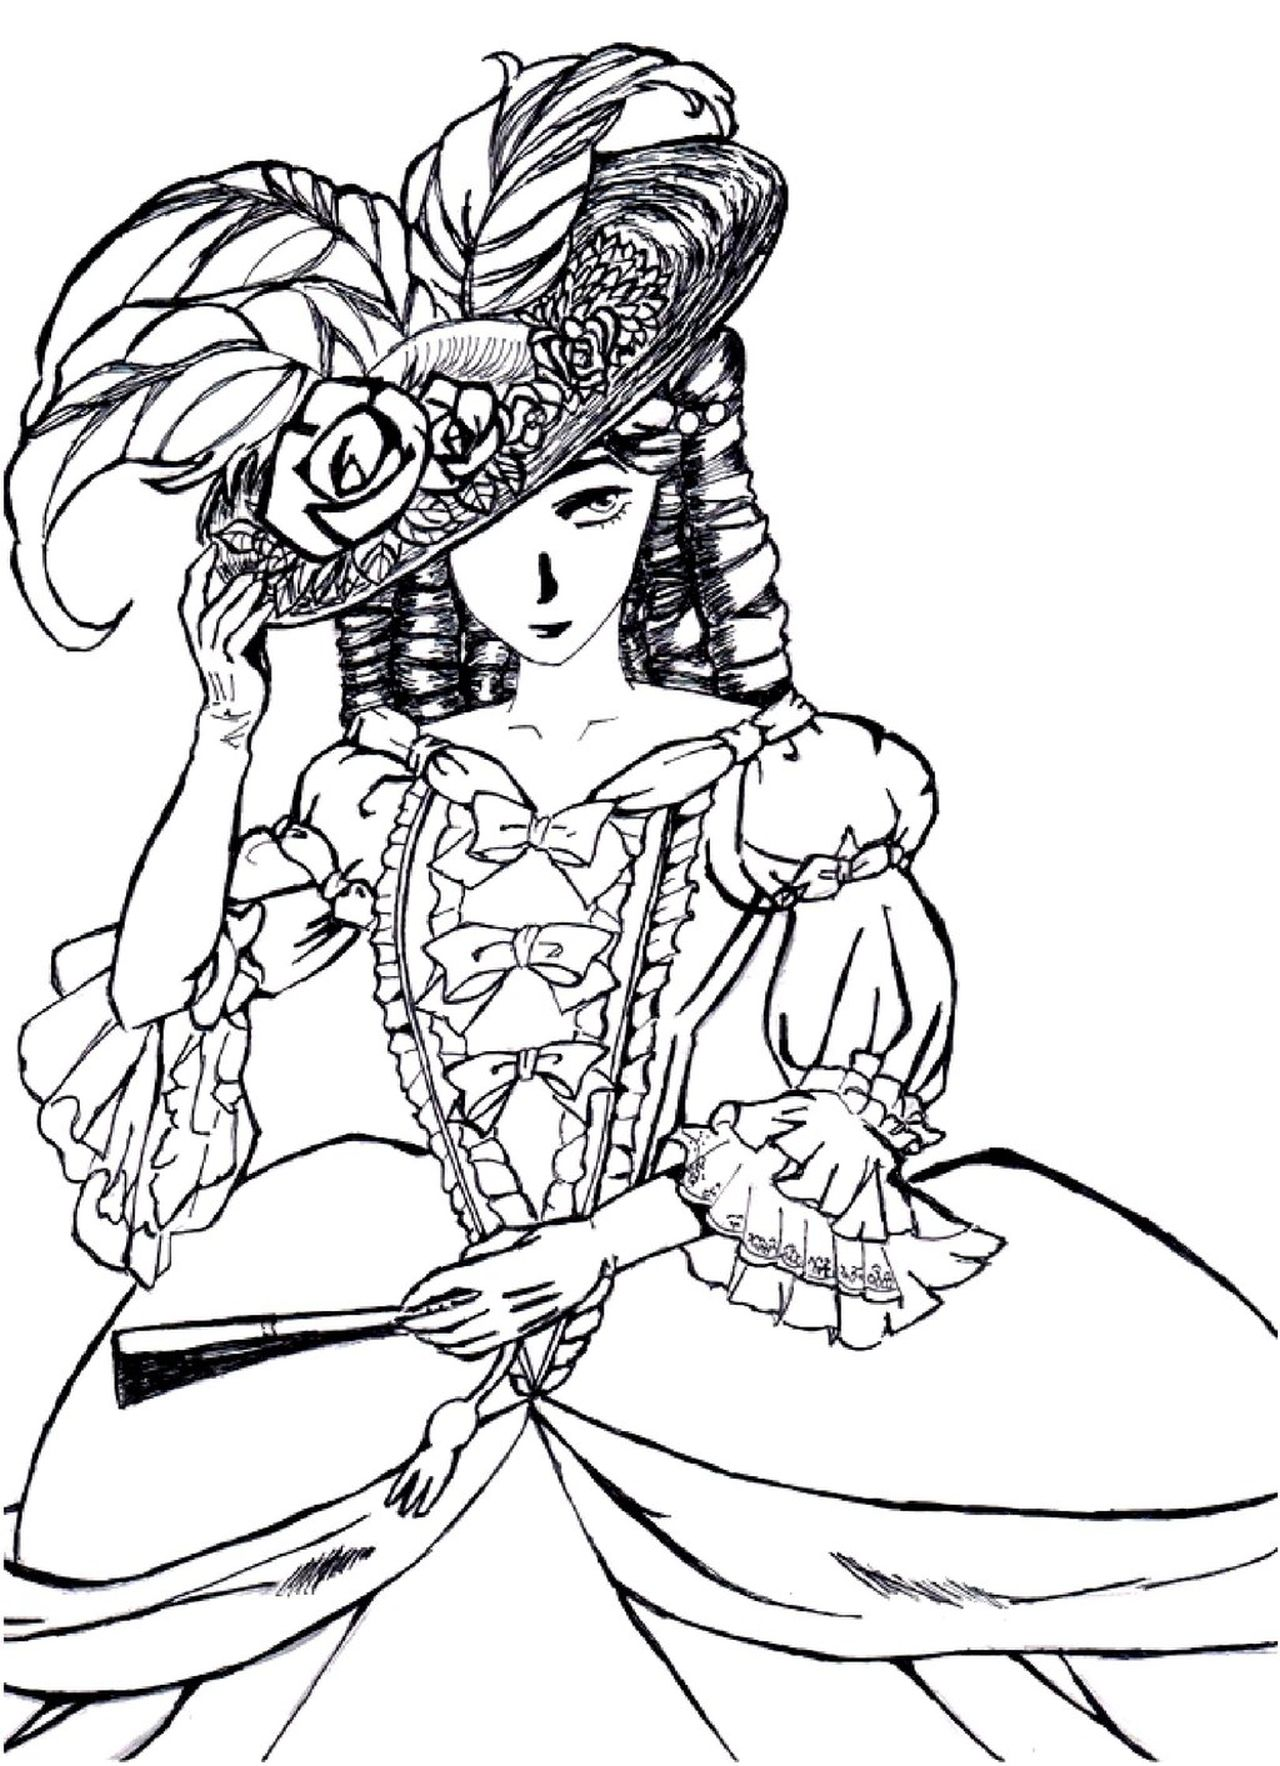 Coloring pages woman - Victorian Woman Fashion Dress Hard Coloring Pages For Grown Ups